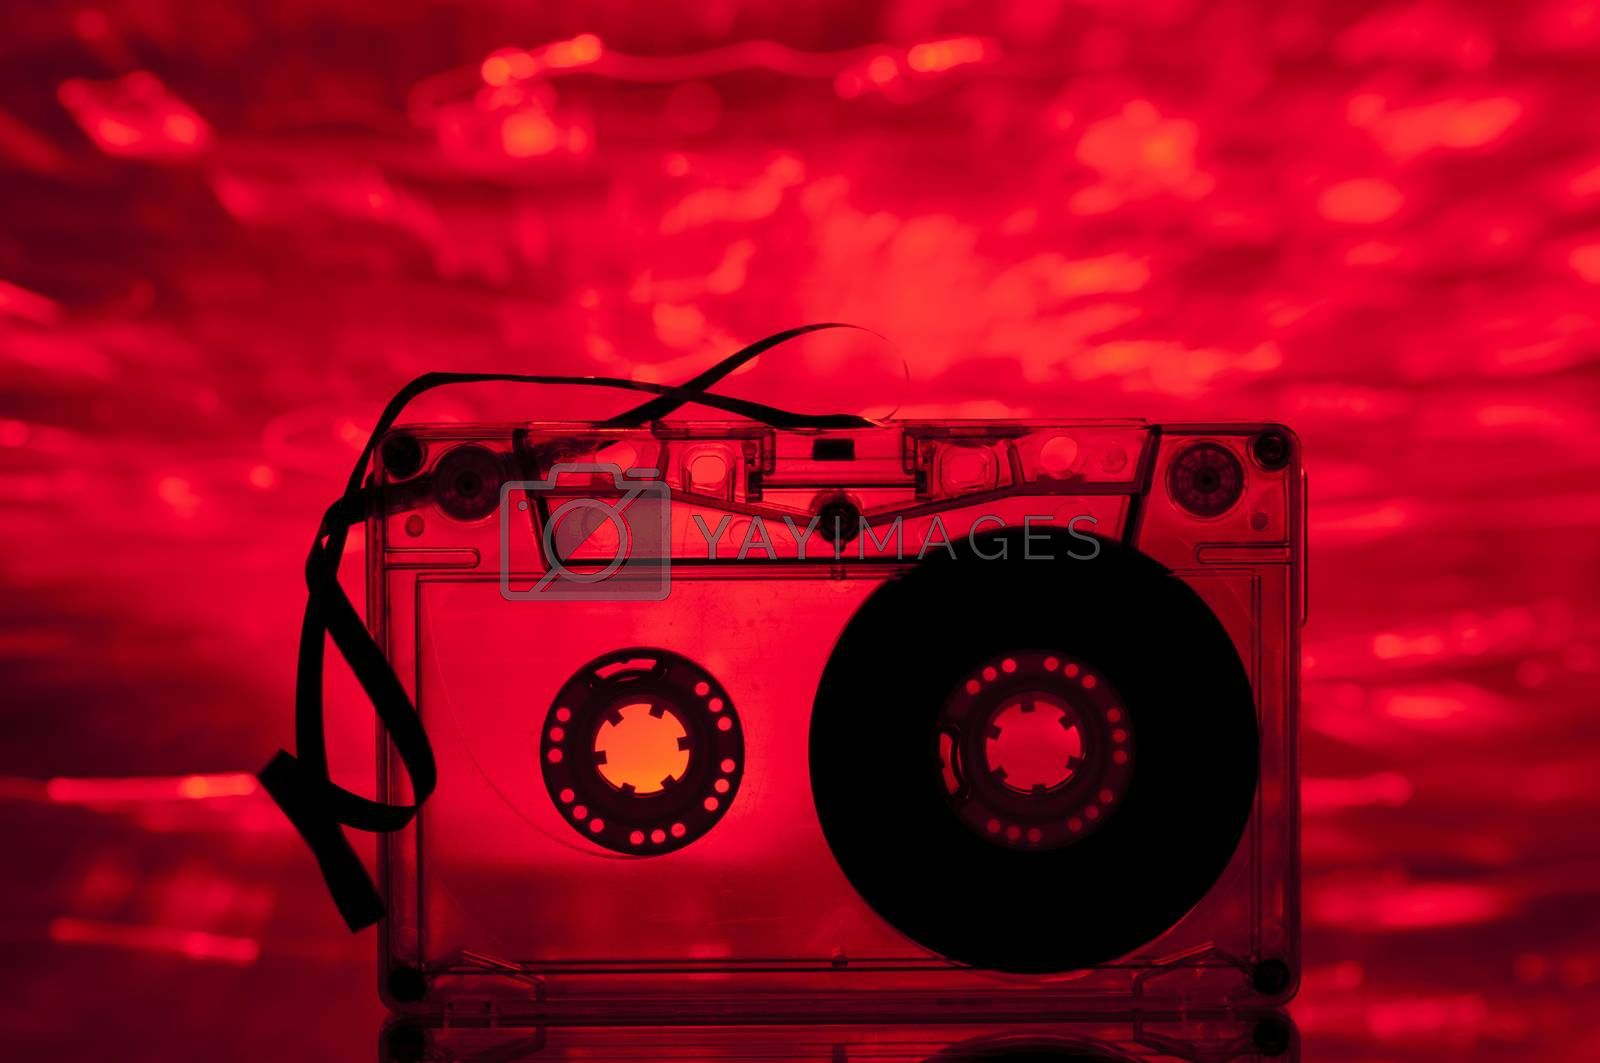 Cassette tape and multicolored lights on background